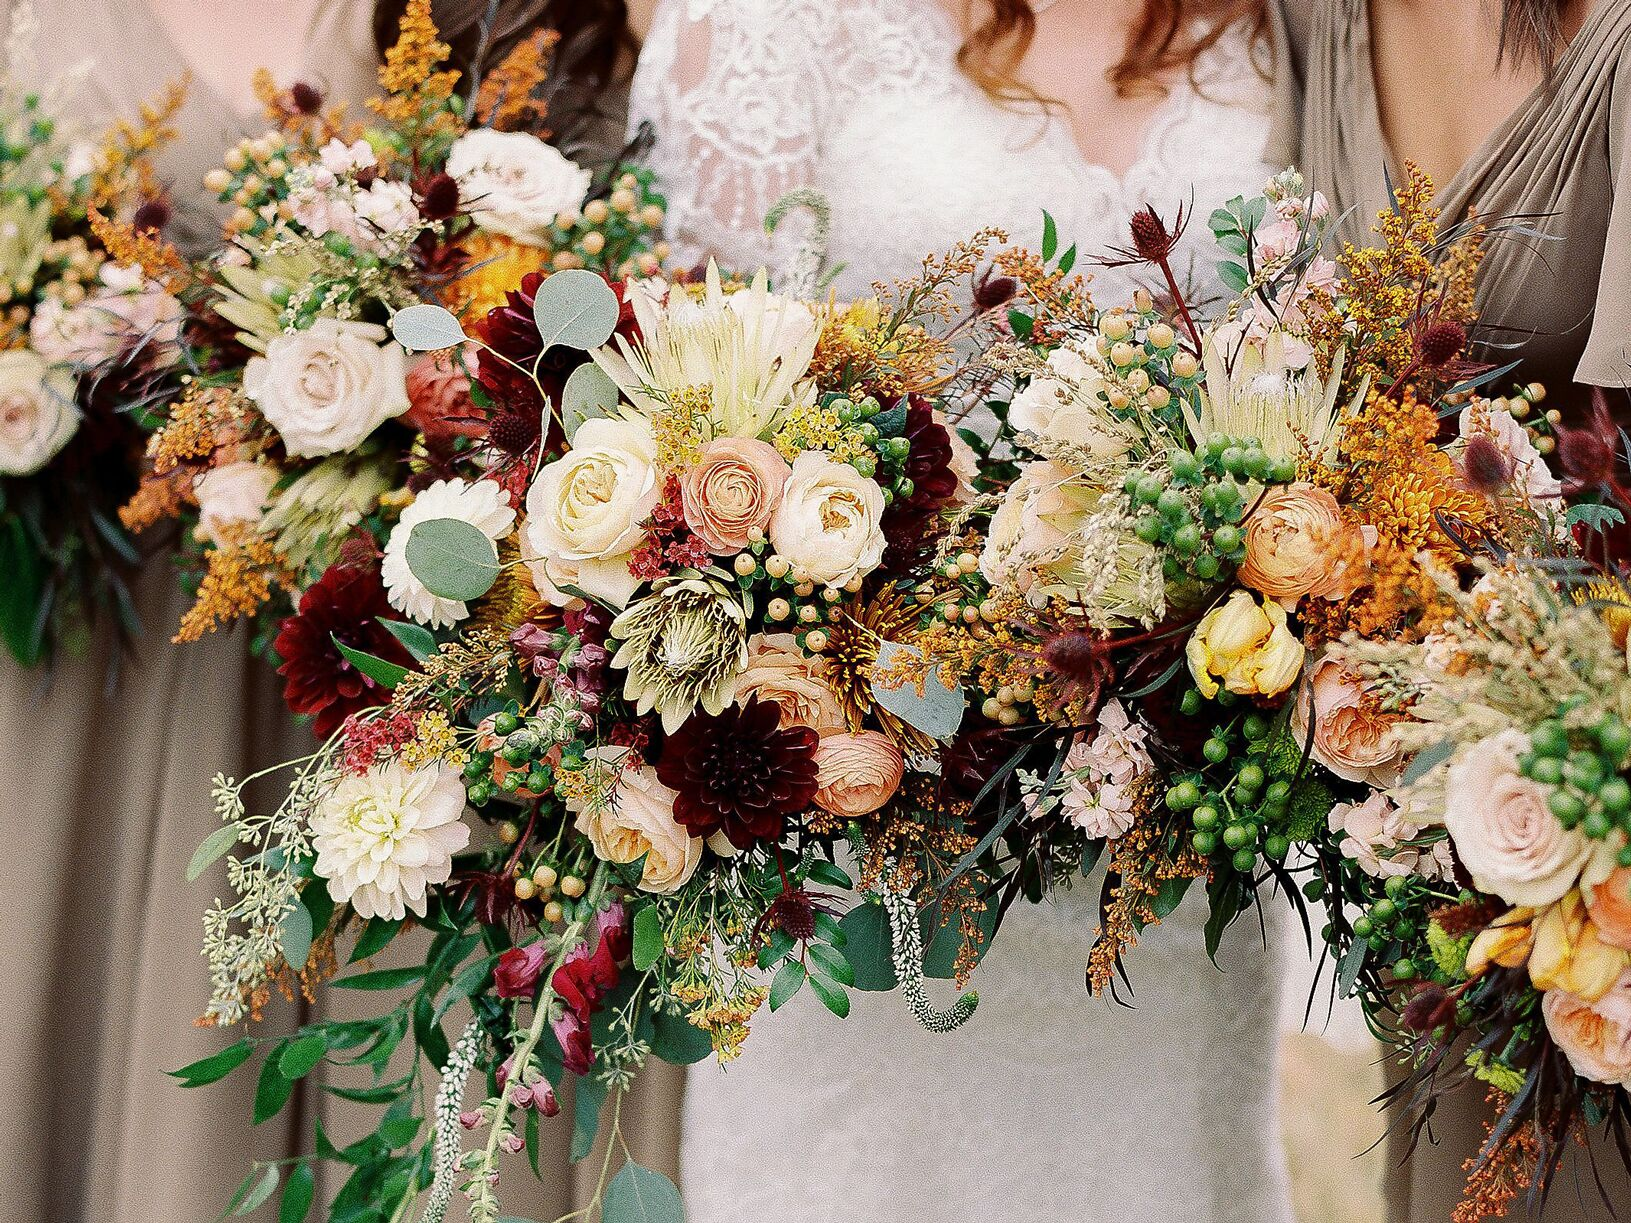 Top 10 Most Popular Wedding Flowers Ever | TheKnot